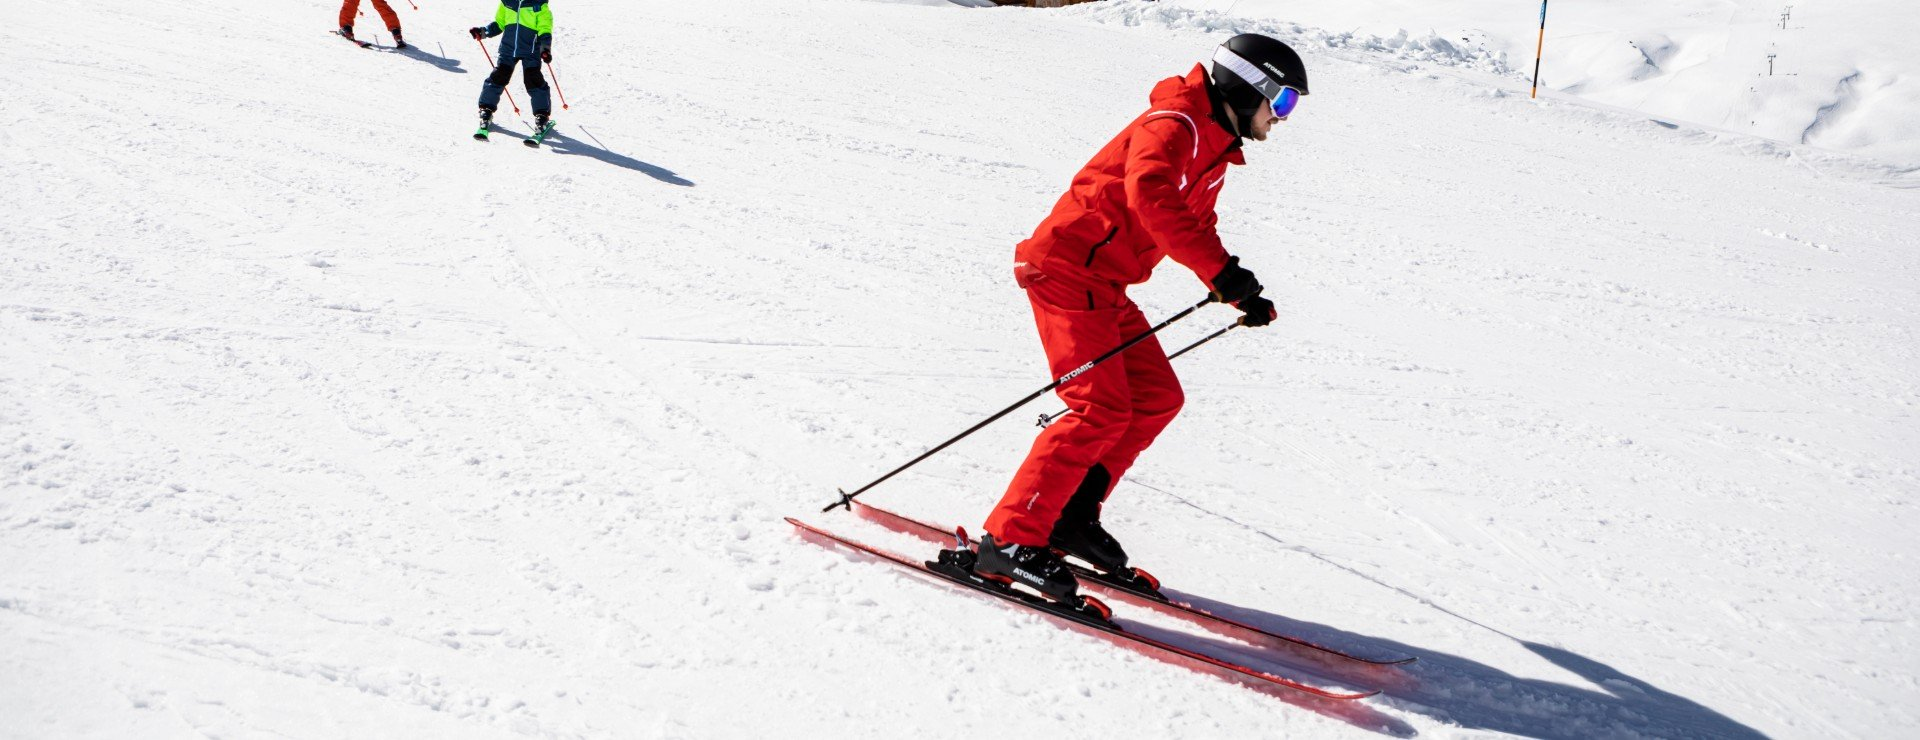 The Right Skiing Technique Swoop Downhill With Parallel Turns